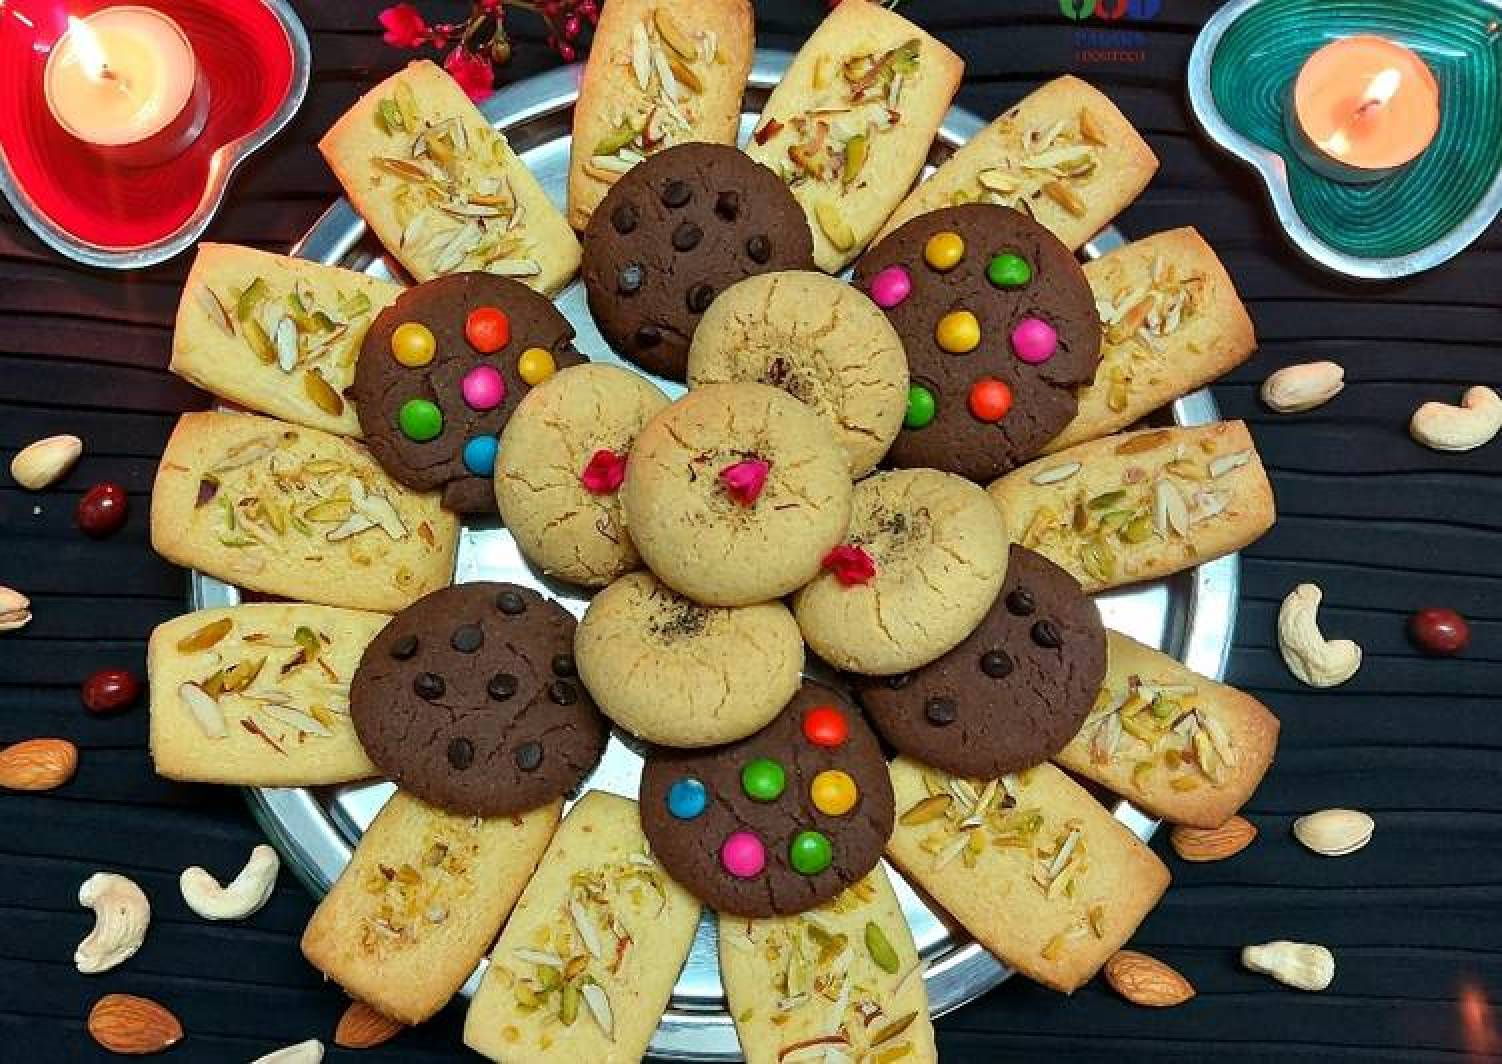 Assorted mixed cookies